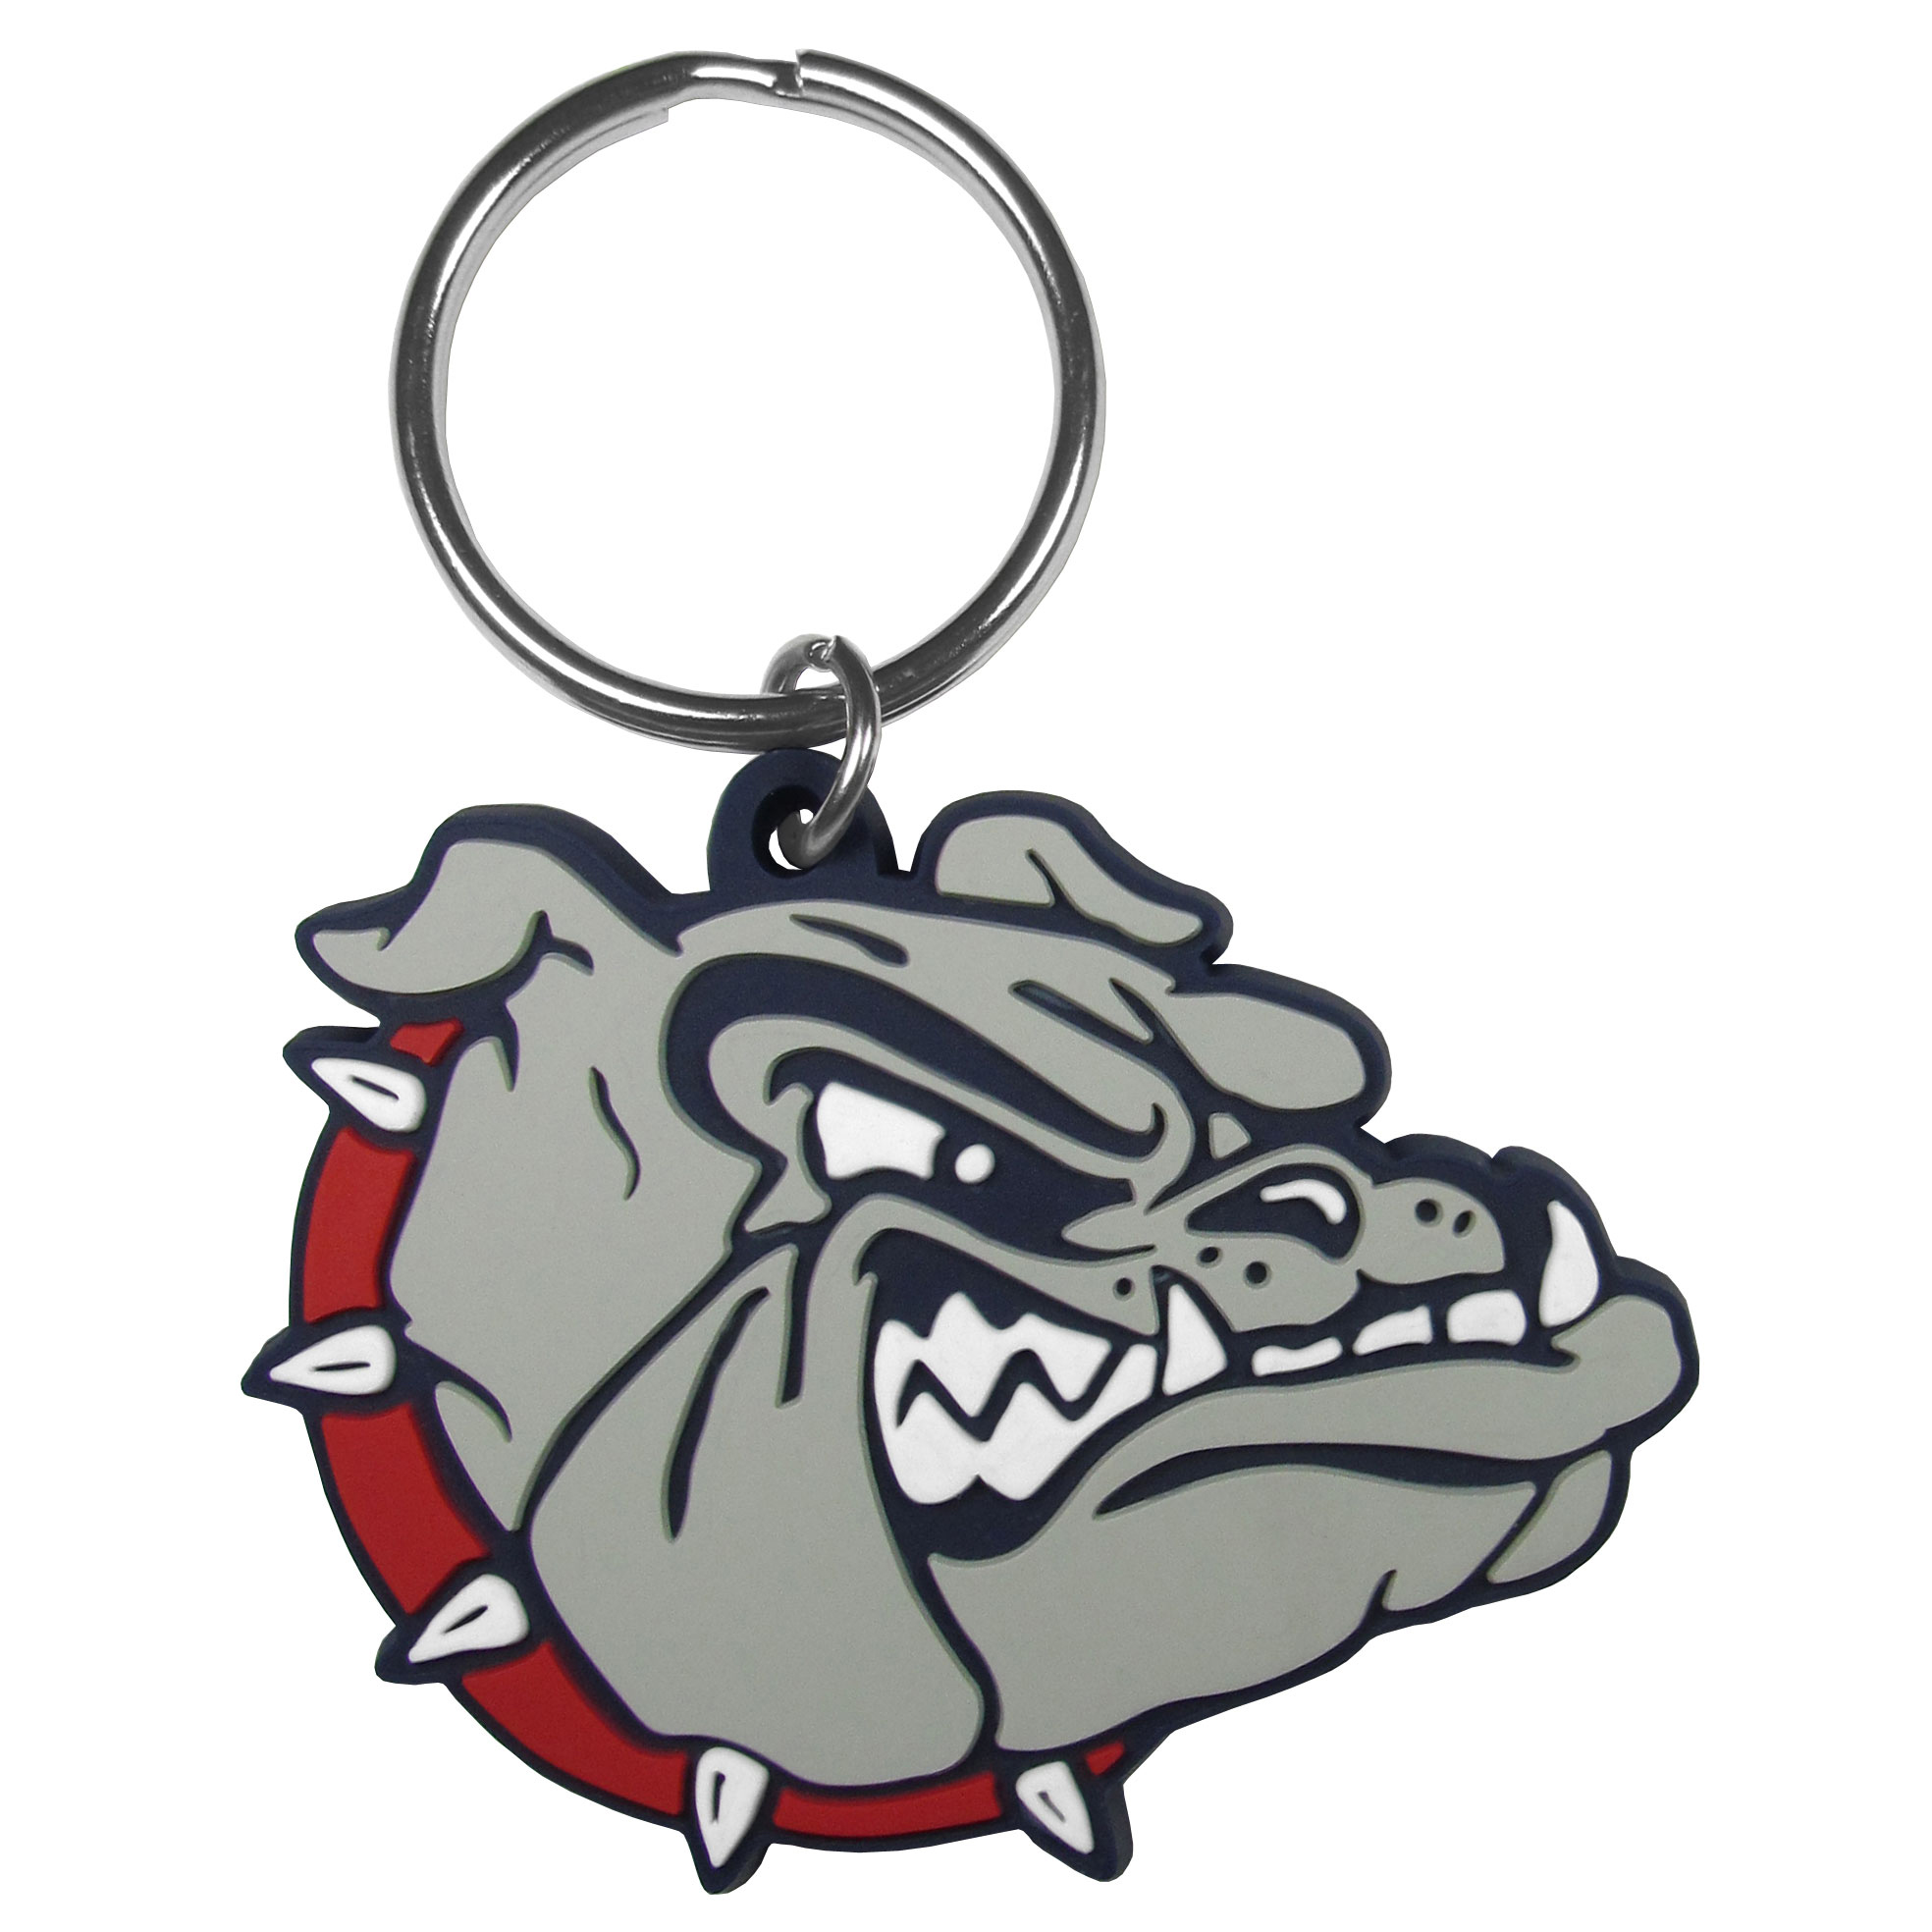 Gonzaga Bulldogs Flex Key Chain - Our fun, flexible Gonzaga Bulldogs key chains are made of a rubbery material that is layered to create a bright, textured logo.